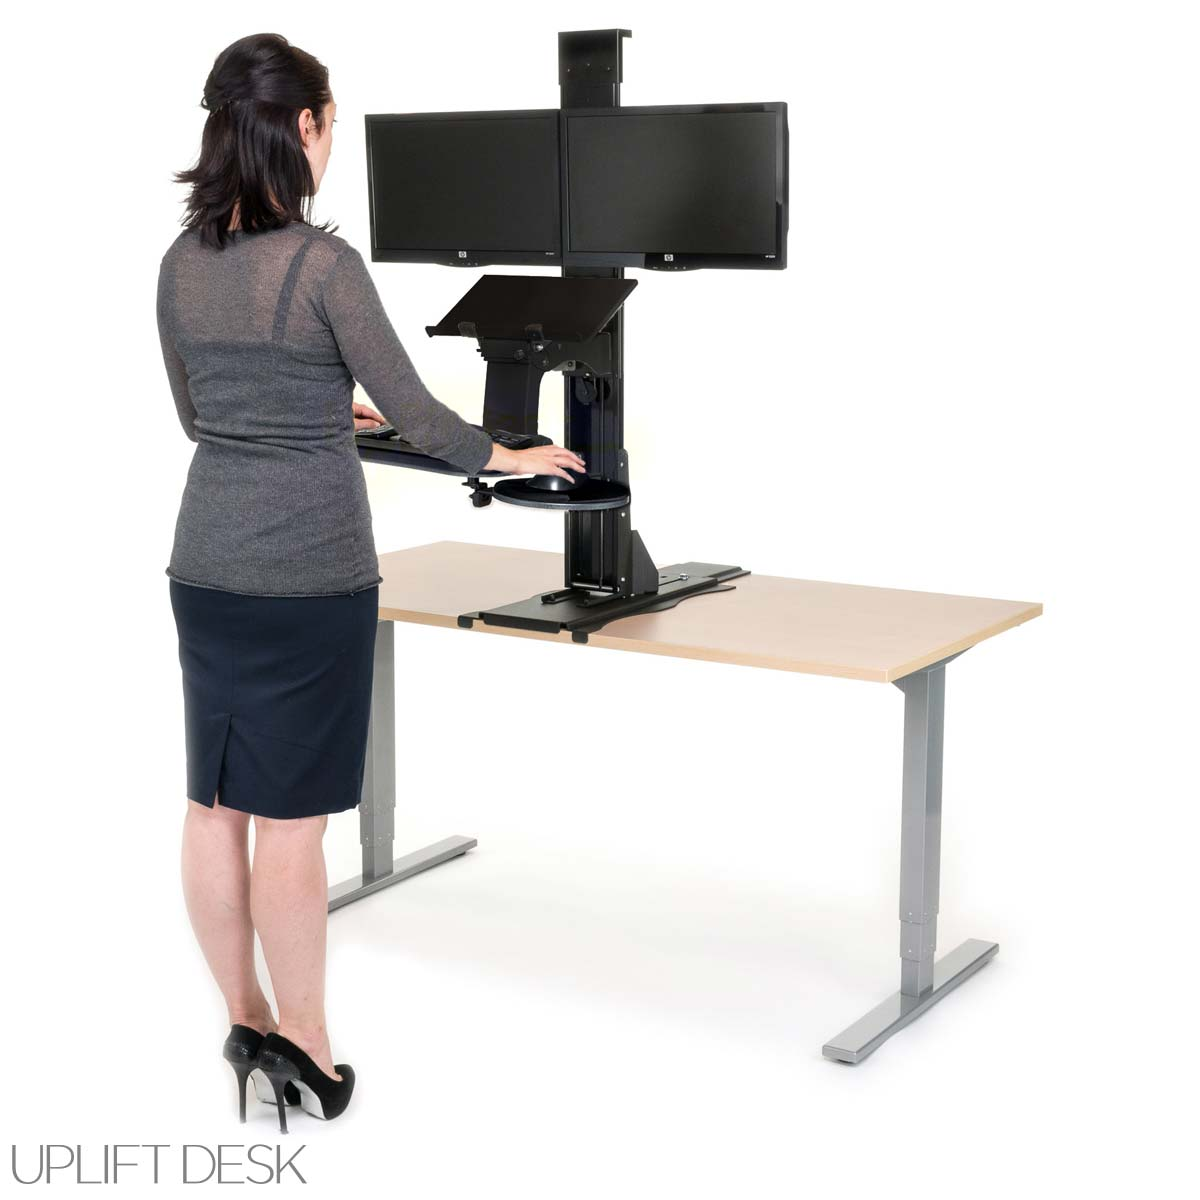 The Best 28 Images Of Convert A Desk To Standing